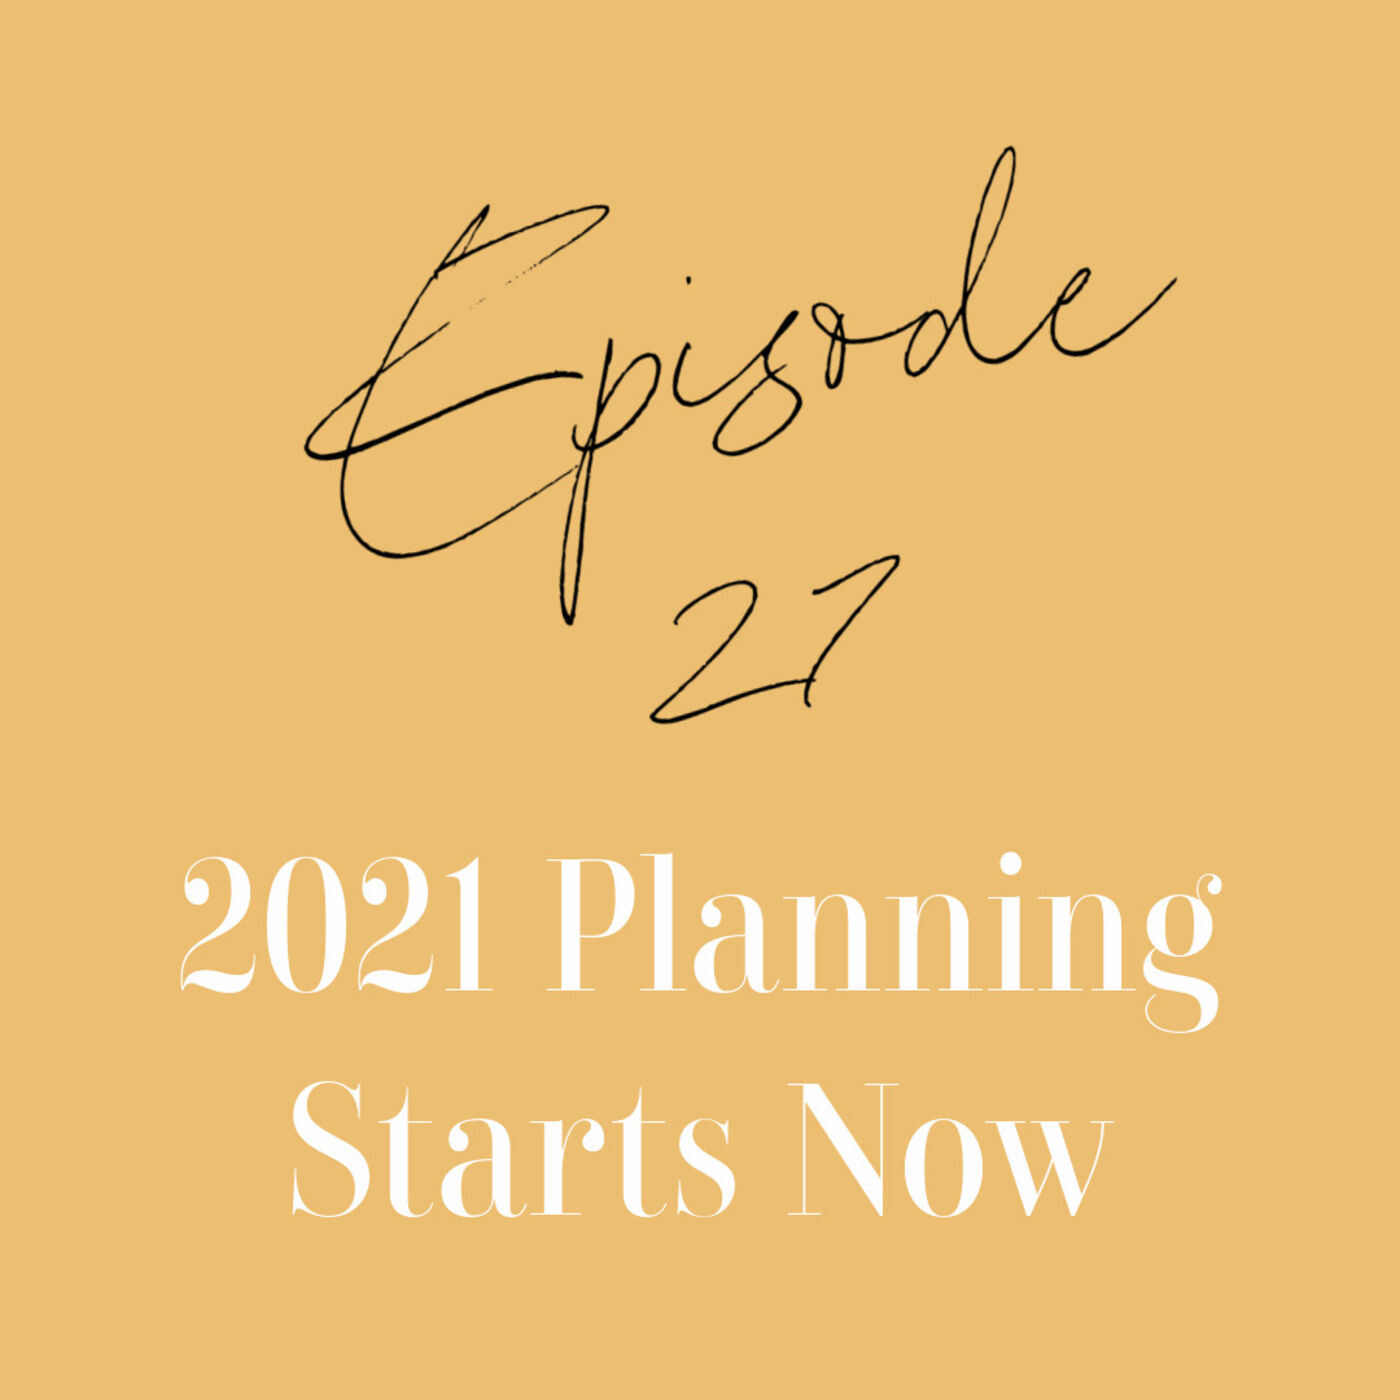 Episode 27: Planning for 2021 Starts Now